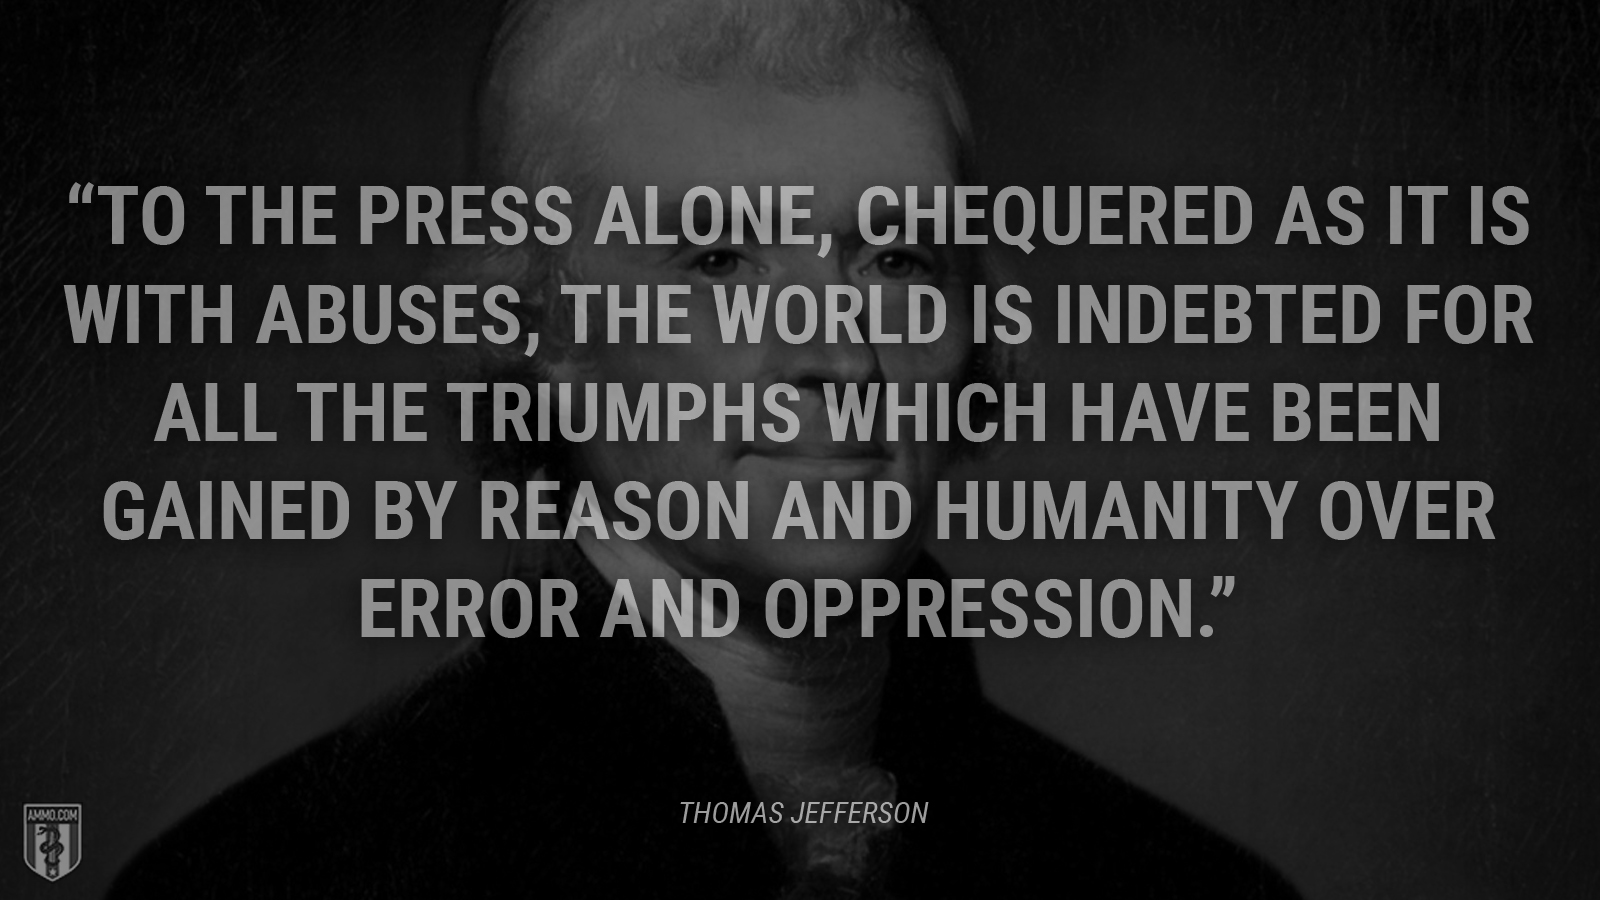 """To the press alone, chequered as it is with abuses, the world is indebted for all the triumphs which have been gained by reason and humanity over error and oppression."" - Thomas Jefferson"